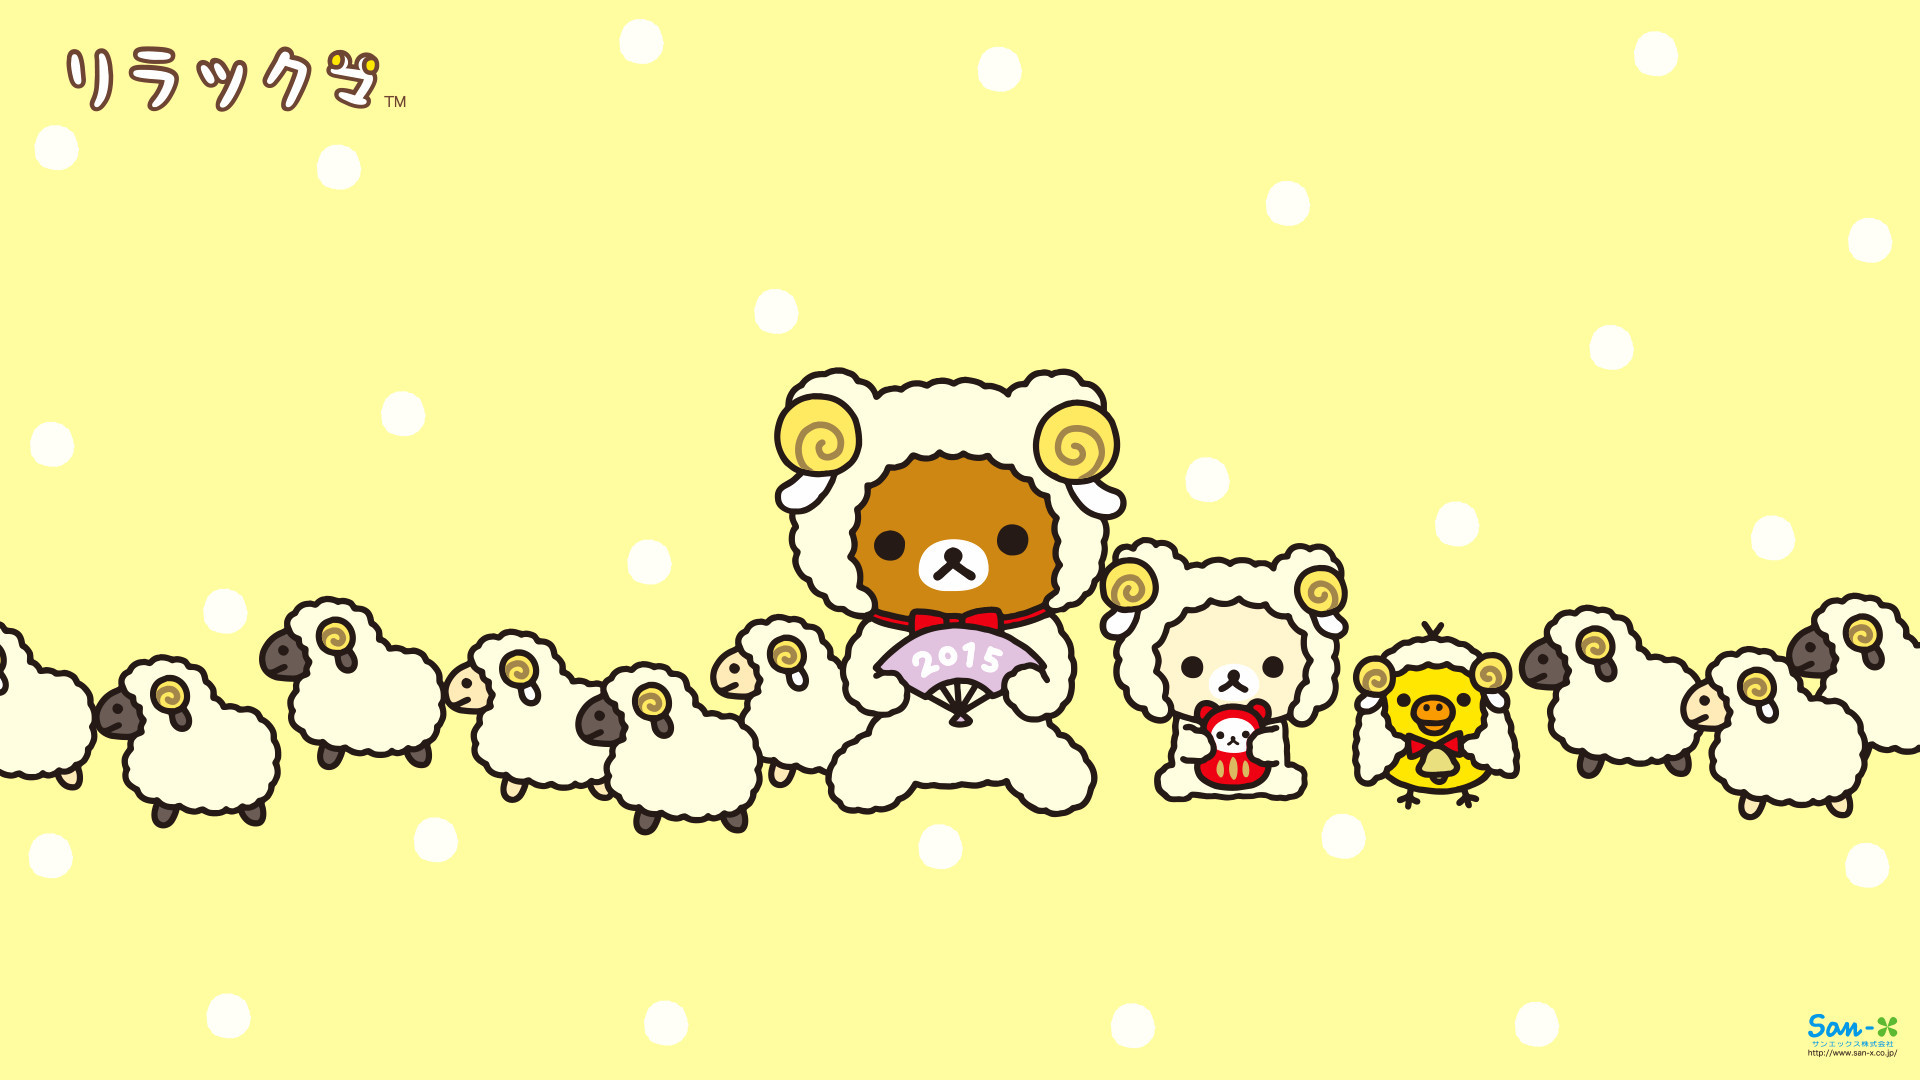 Res: 1920x1080, iPhone 5 Wallpaper Rilakkuma Rilakkuma Wallpaper Gzsihai Of iPhone 5 Wallpaper  Rilakkuma Rilakkuma Wallpaper Gzsihai